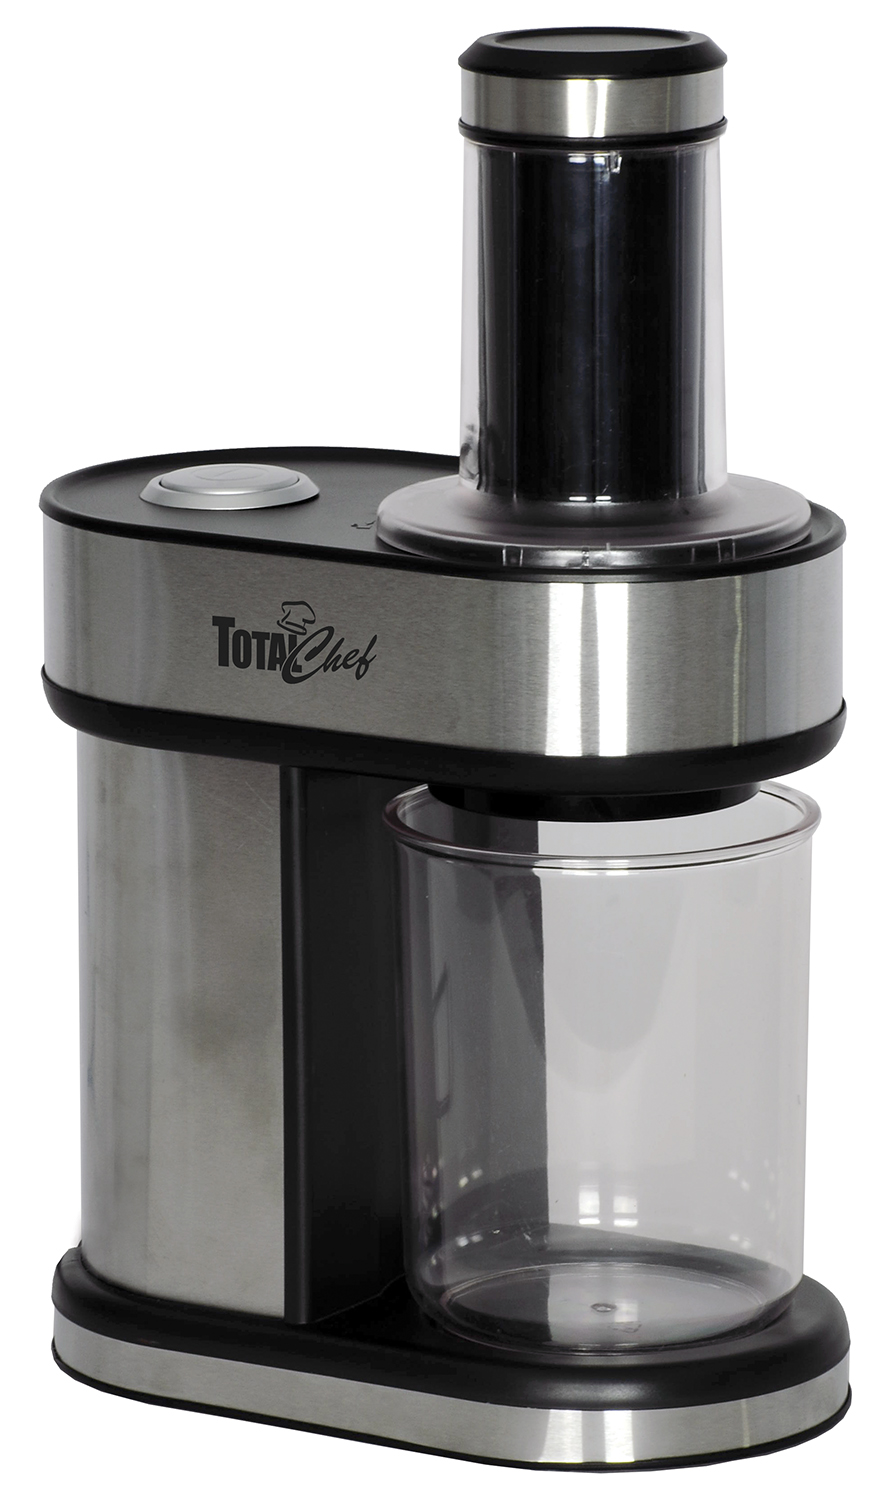 Image of Total Chef TCES03 Electric Spiralizer, Black